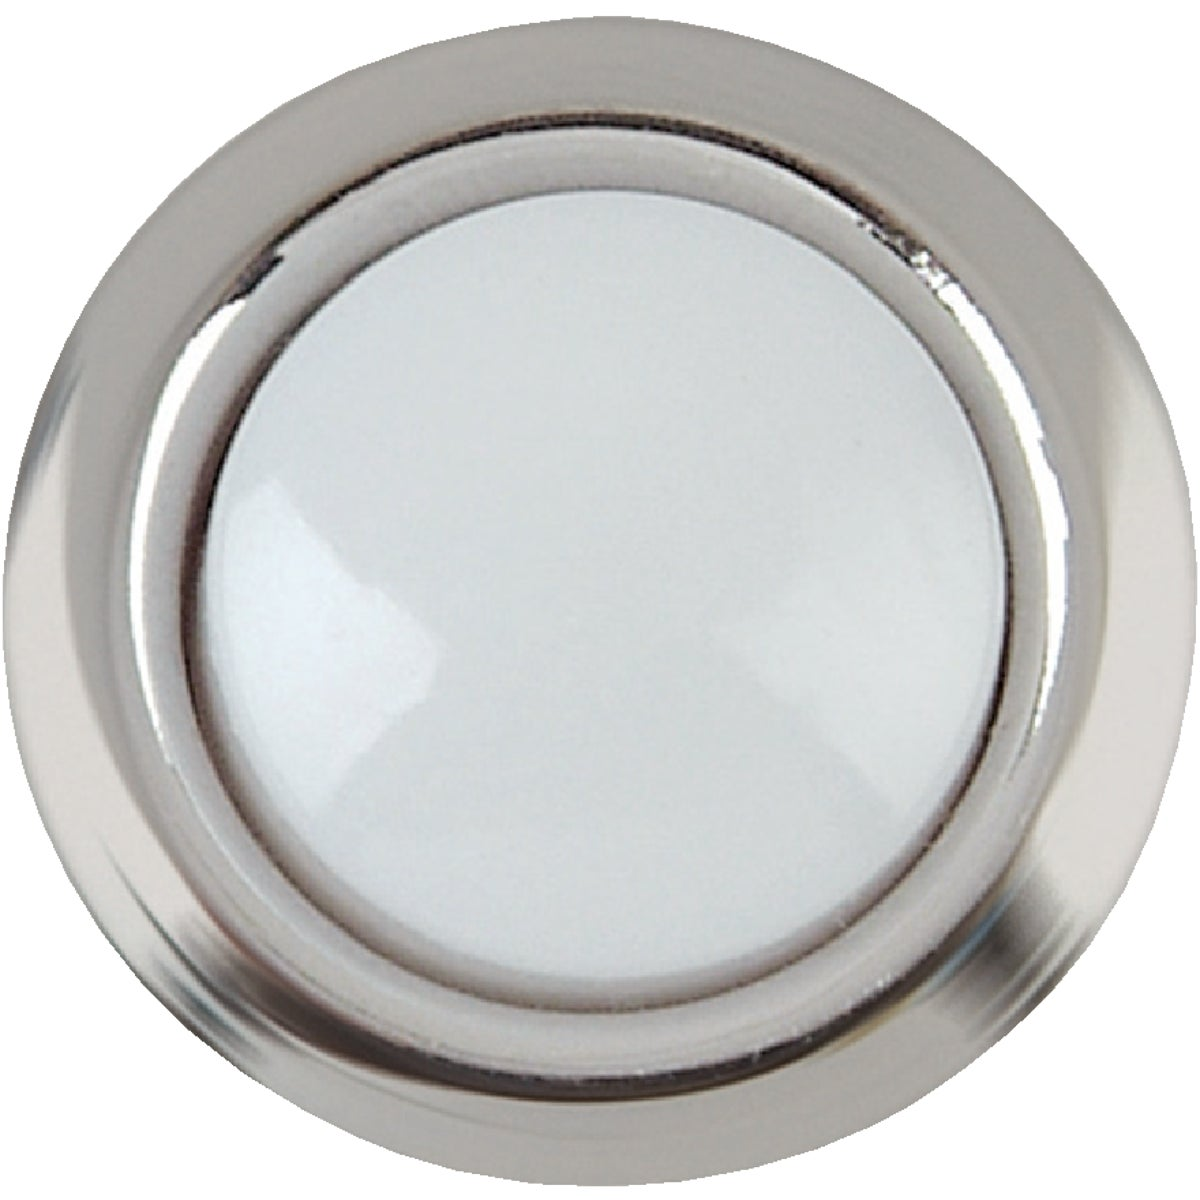 Slvr Lighted Push-Button